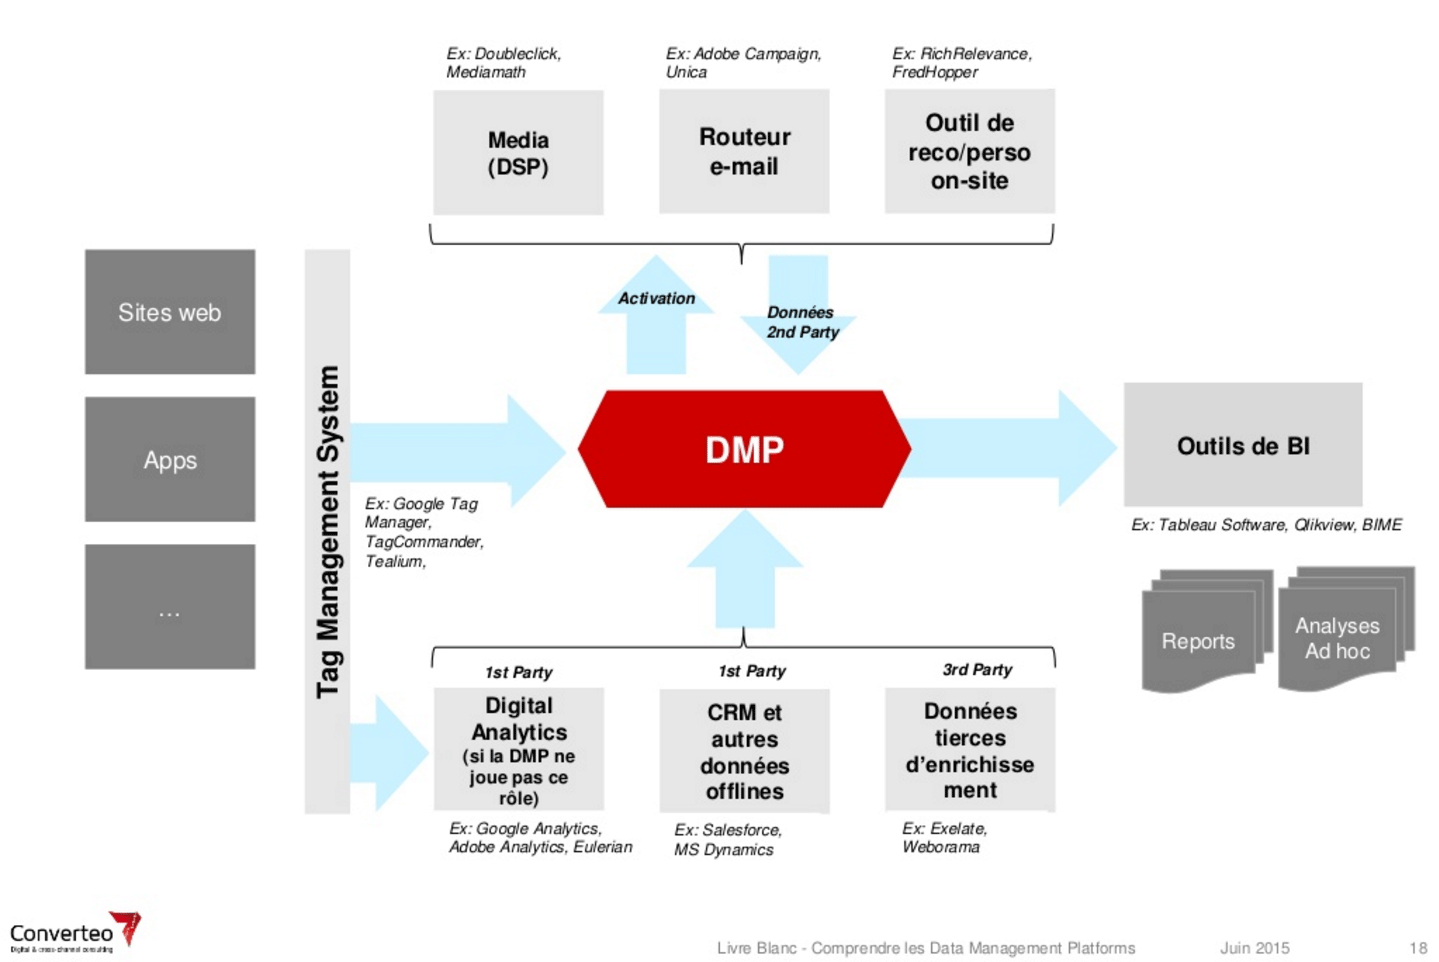 DMP — a new marketing tool for simultaneously consolidating data sources and using the customer profile to act in real time. (Source: Converteo)